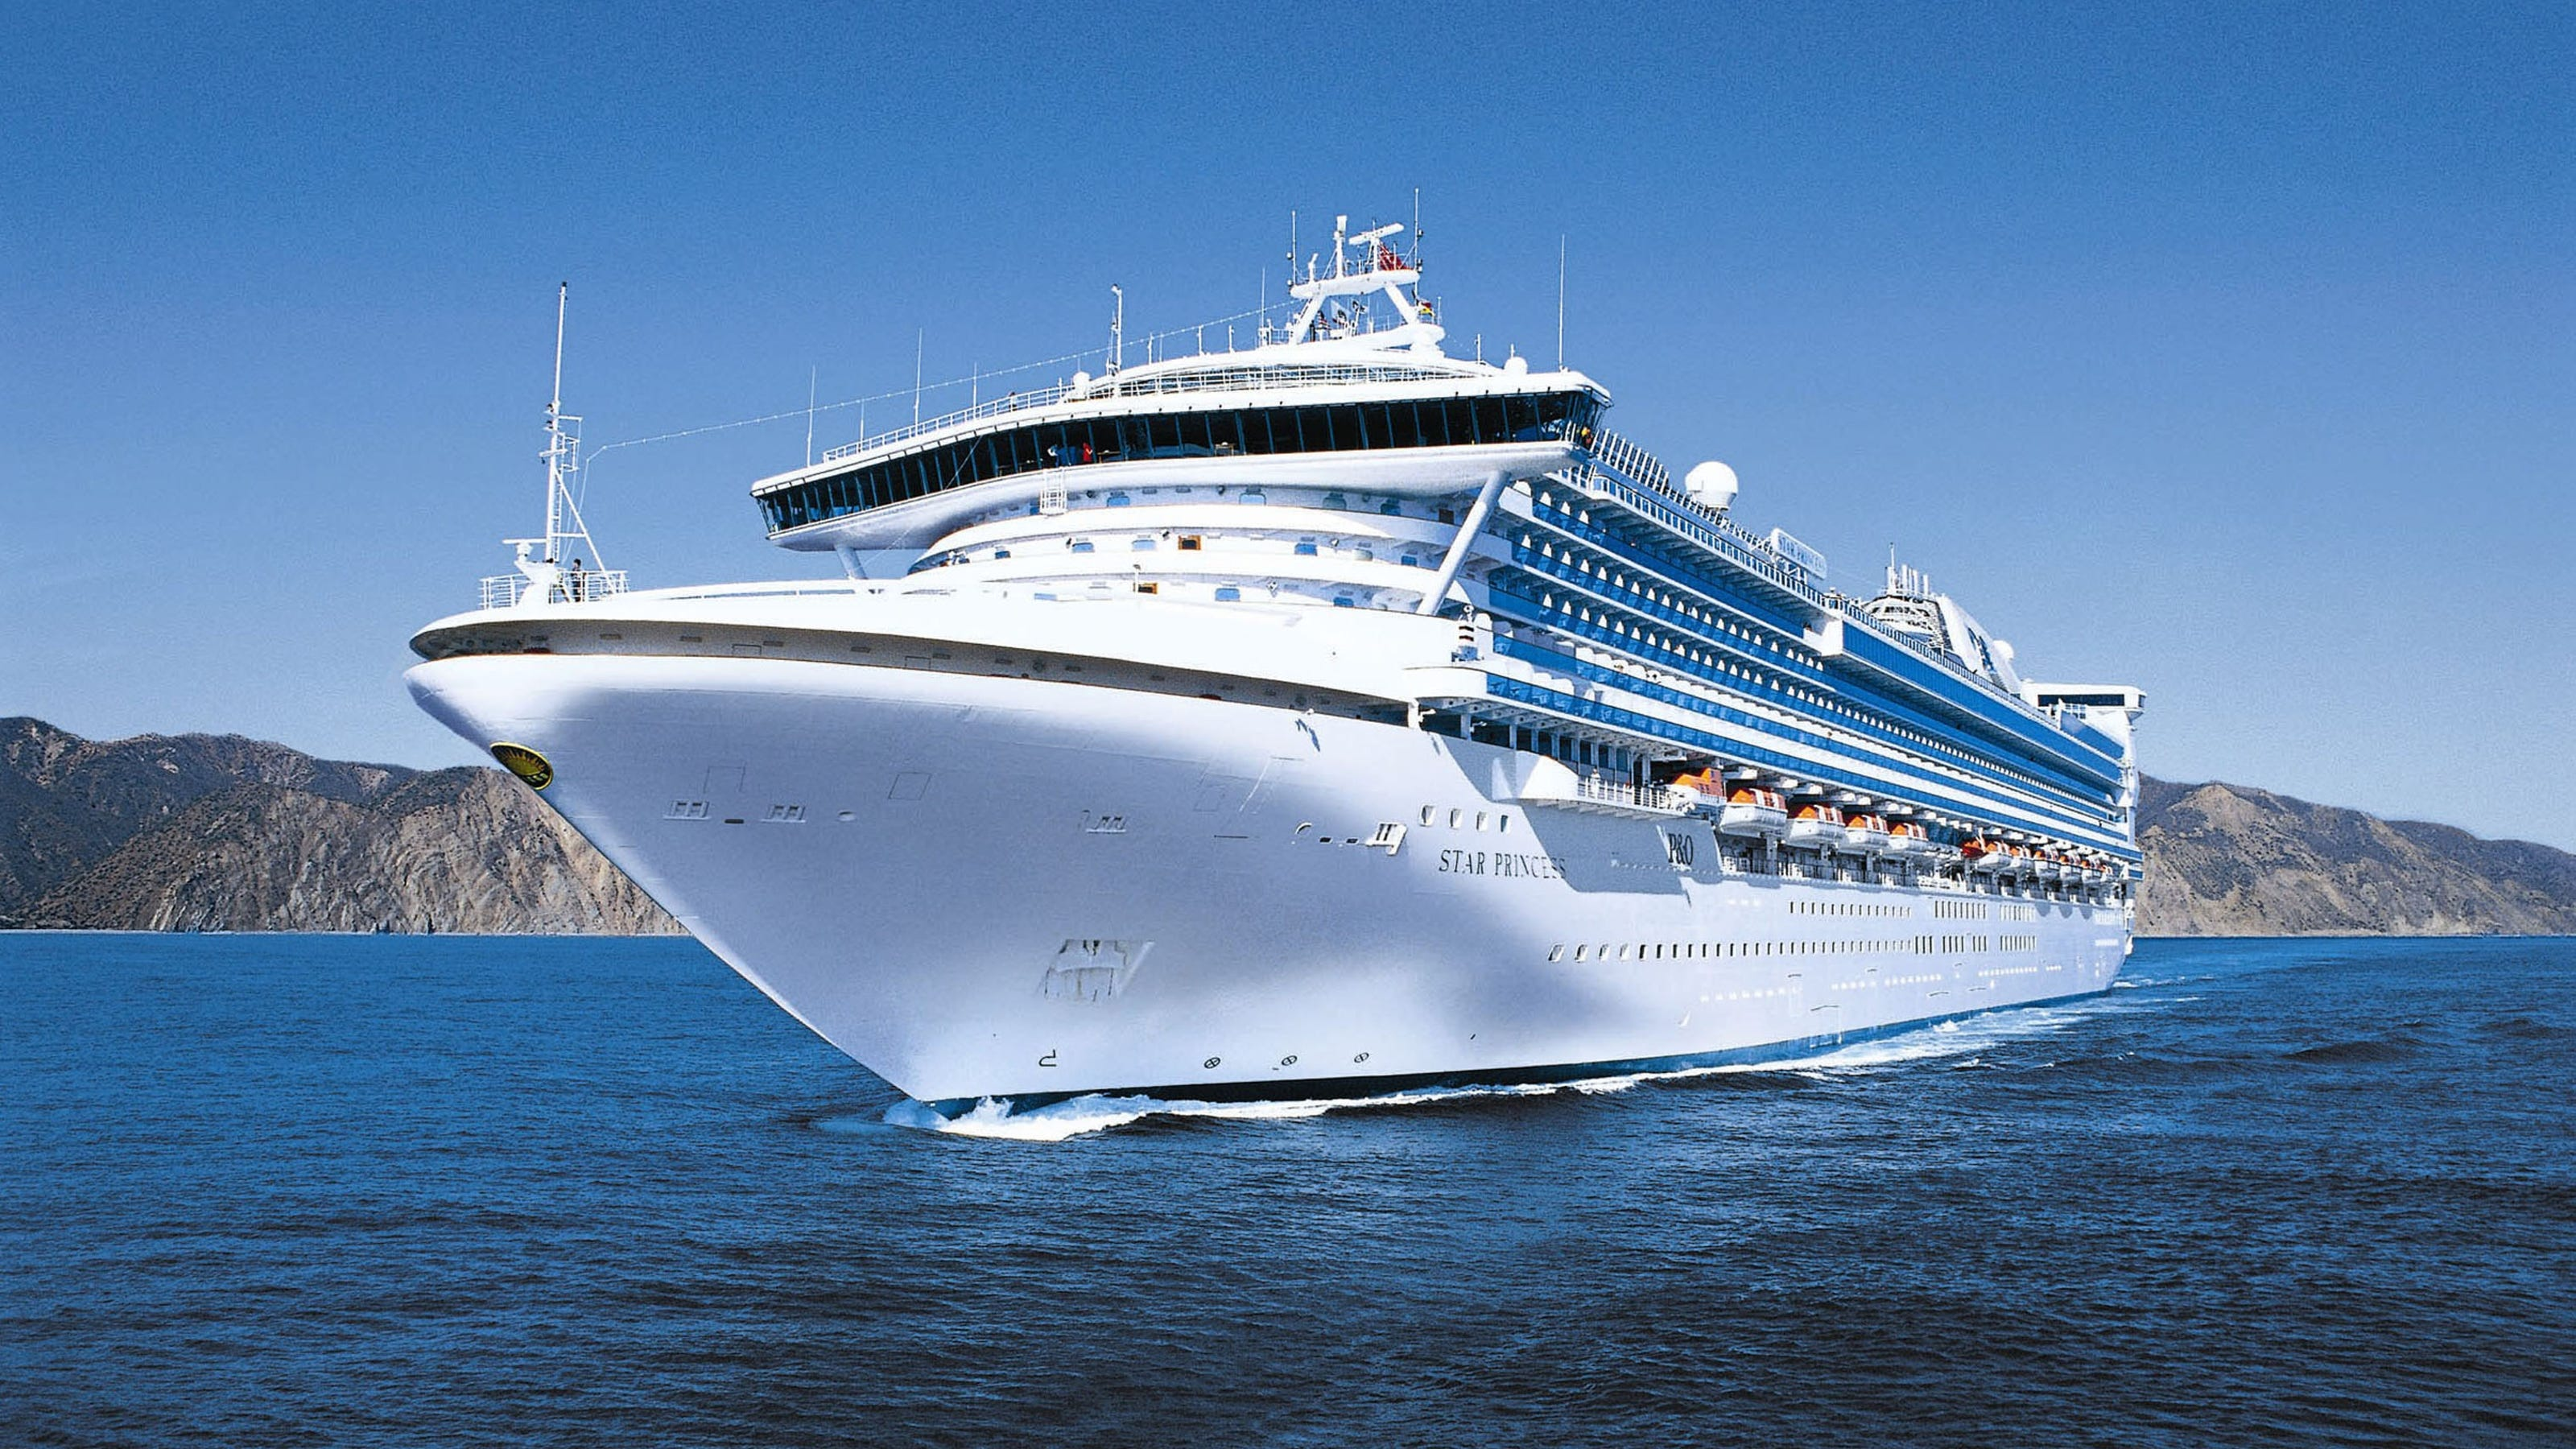 Cruise ship review: Princess Cruises' Star Princess